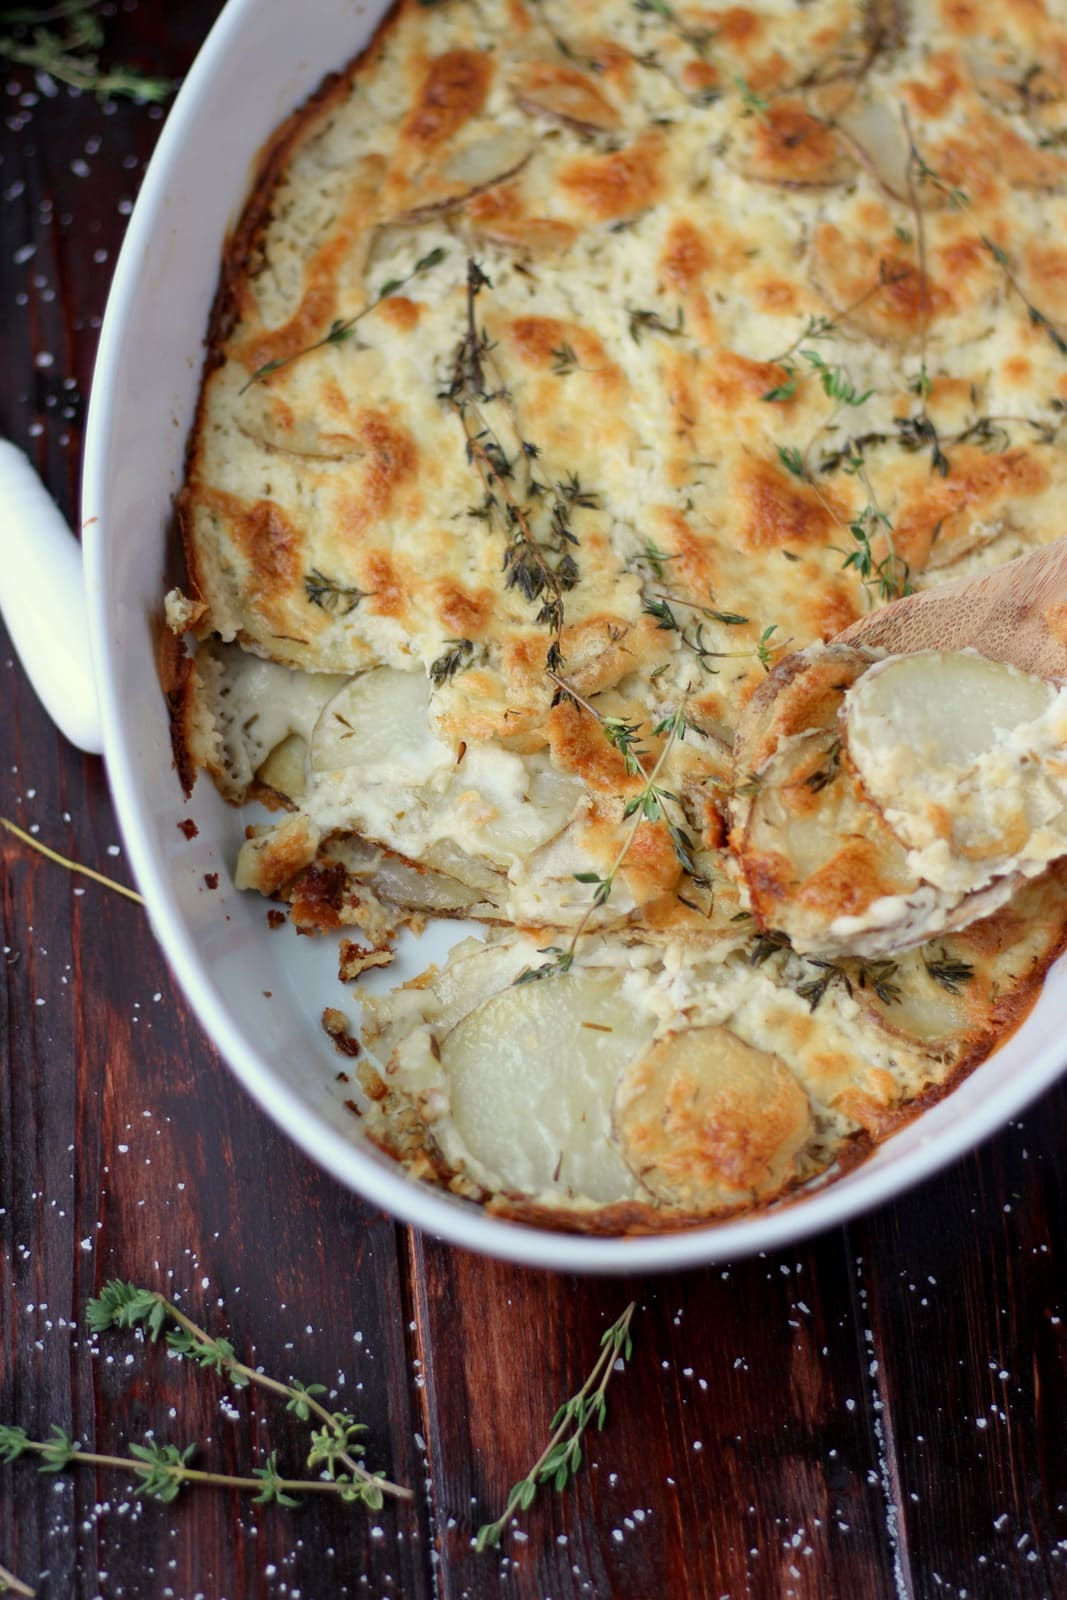 Goat Cheese Potatoes Au Gratin + Browned Butter and Fresh Thyme - awesome Thanksgiving recipe! thewoodenskillet.com #foodphotography #foodstyling